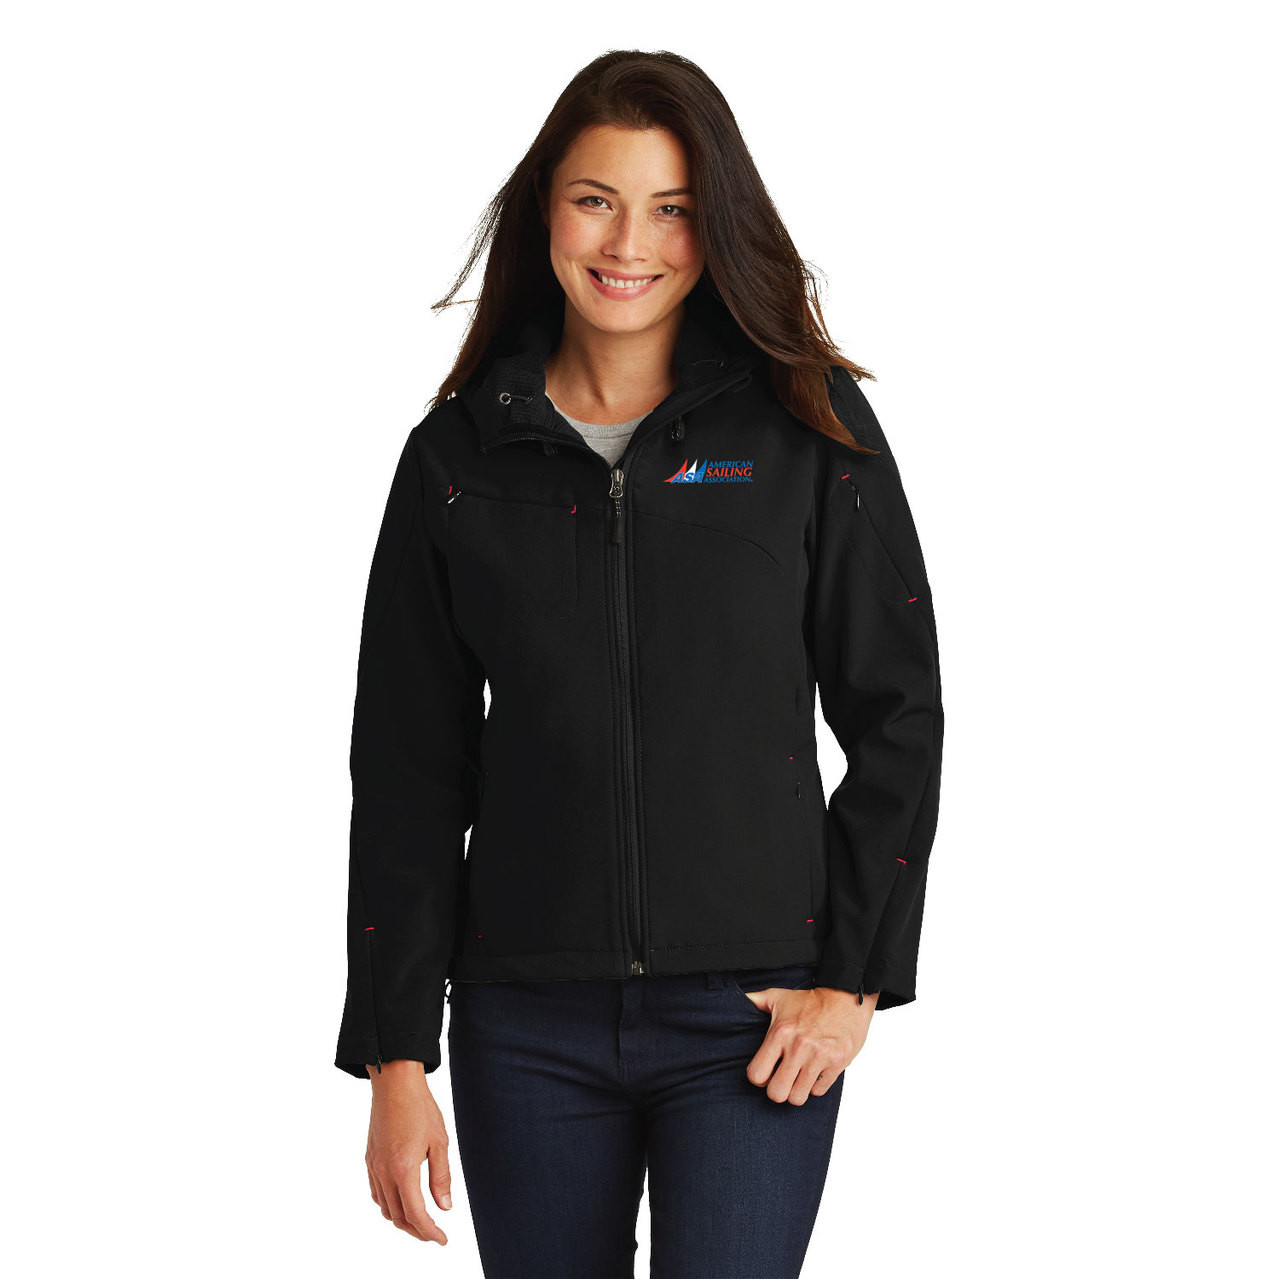 0b19a0a10 American Sailing Association Women's Waterproof Hooded Soft Shell Jacket -  Pirates Lair Store